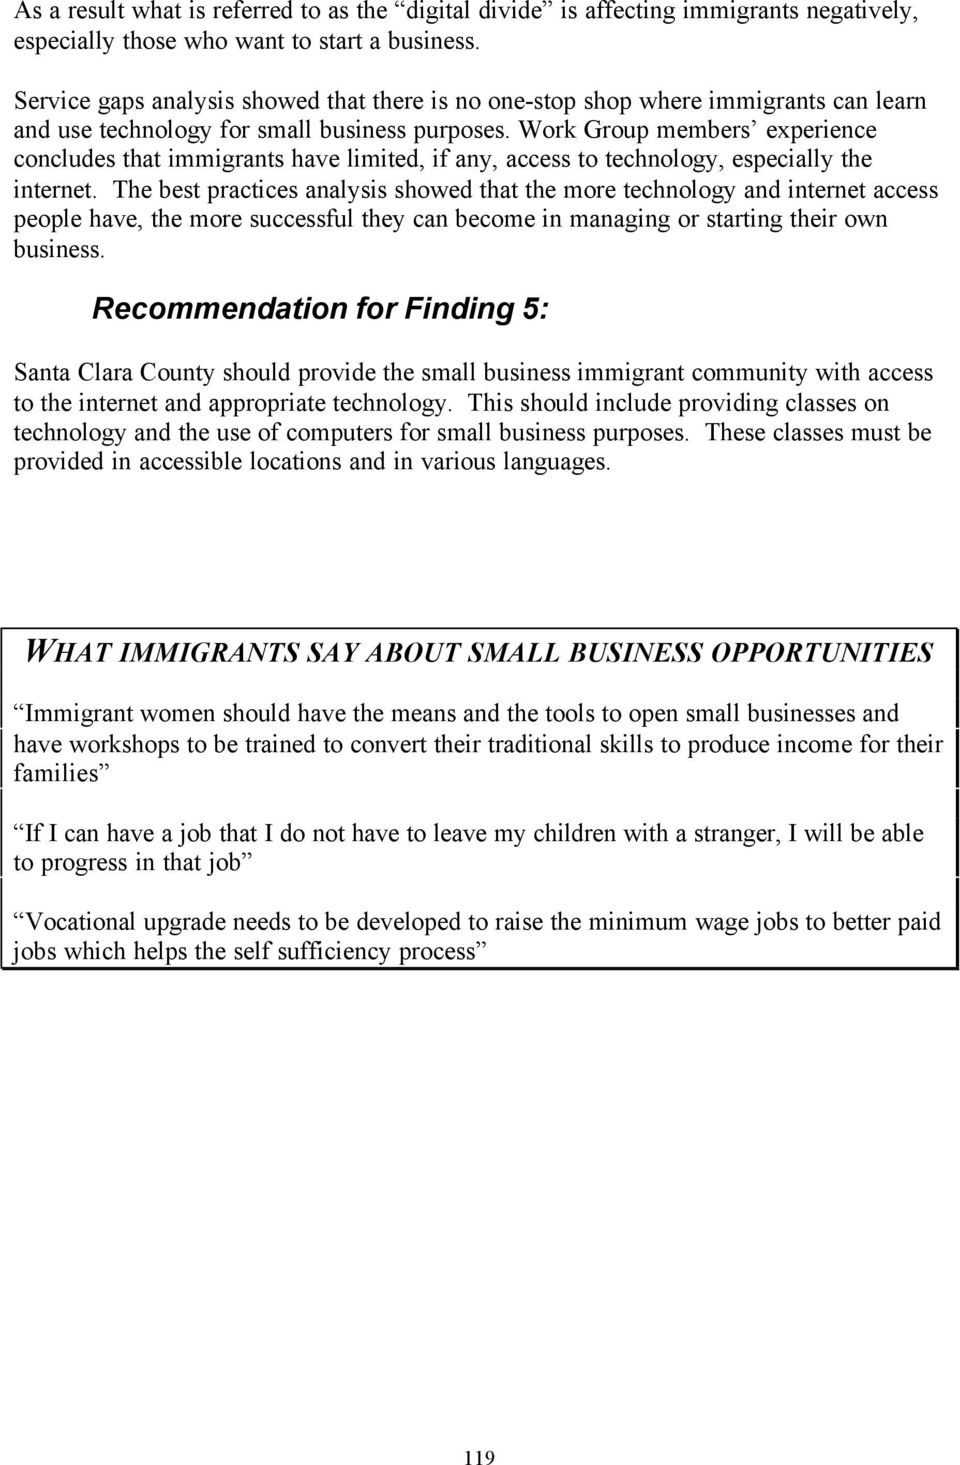 Work Group members experience concludes that immigrants have limited, if any, access to technology, especially the internet.